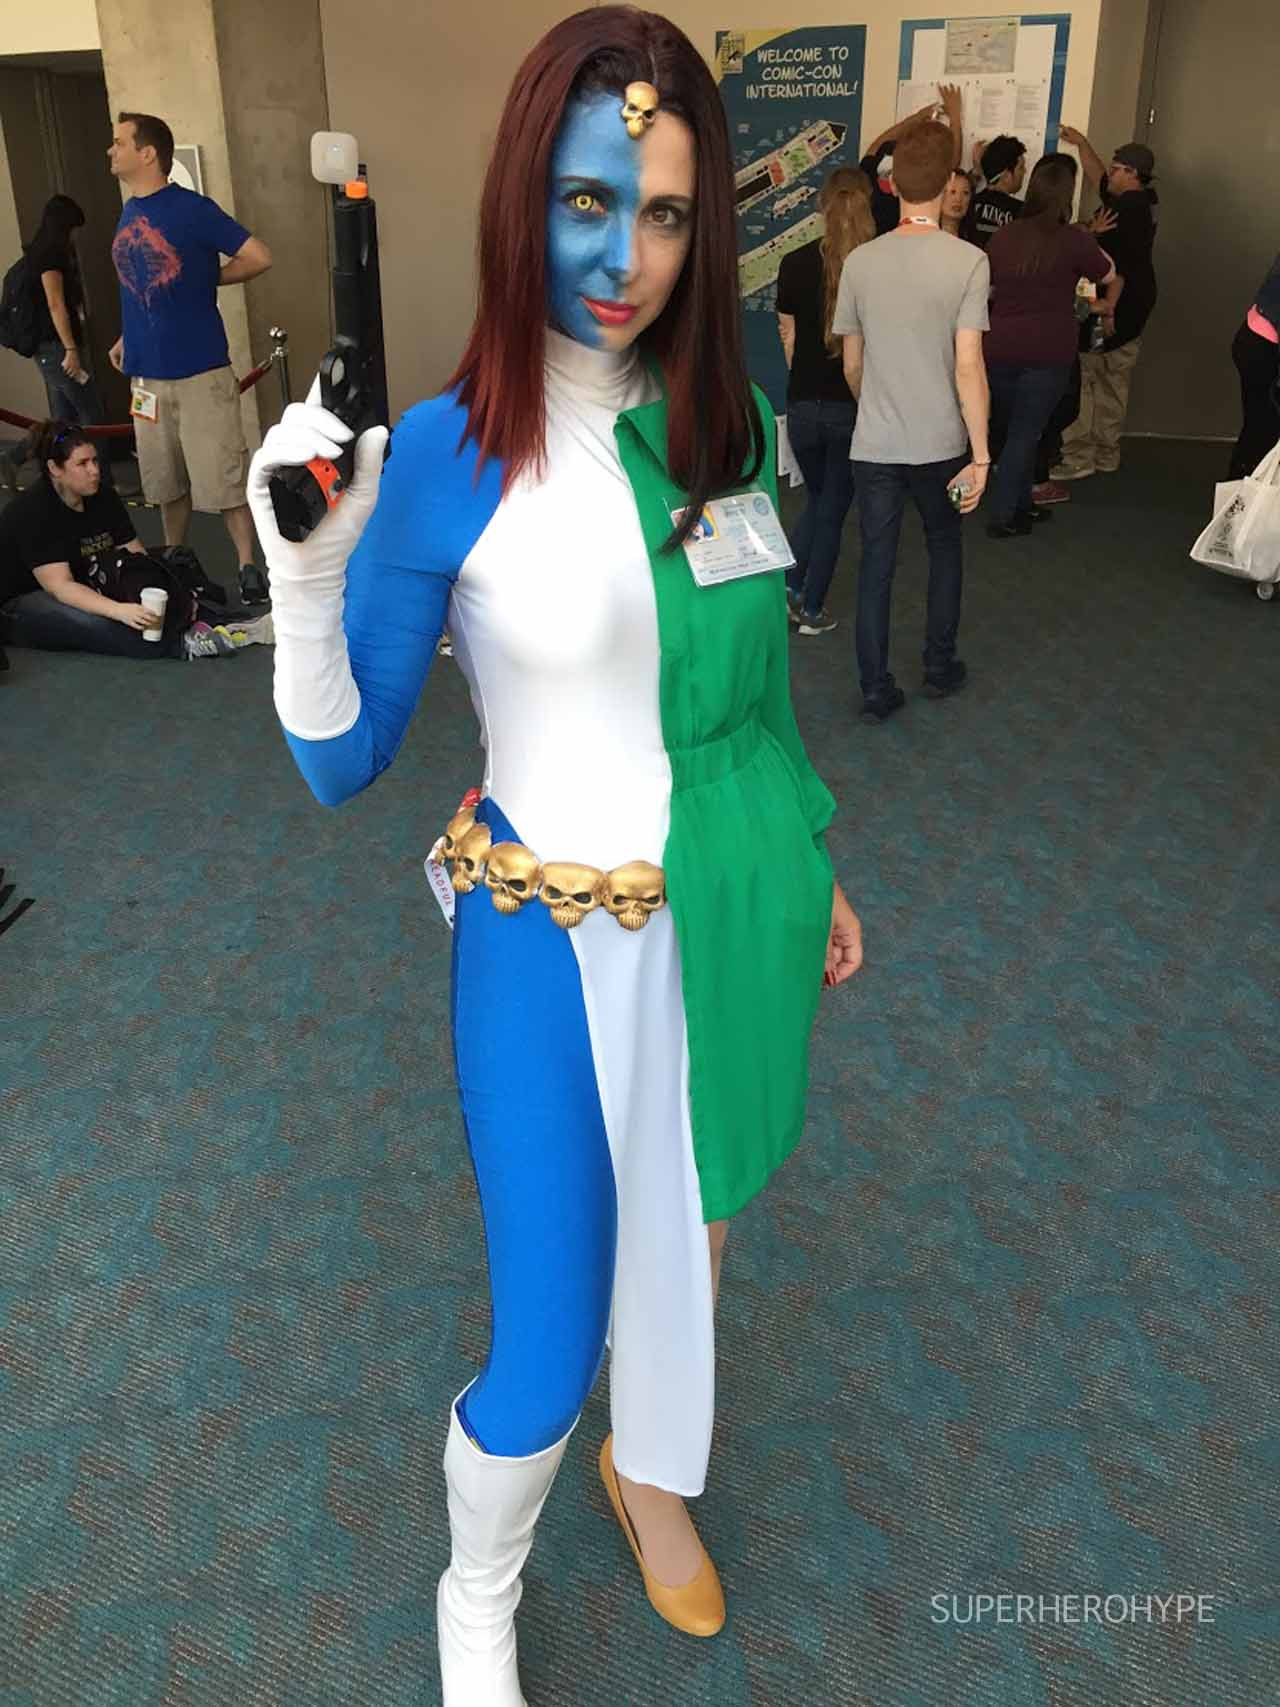 http://cdn1-www.superherohype.com/assets/uploads/gallery/comic-con-2015-cosplay-photos-4/cosplayday20063.jpg